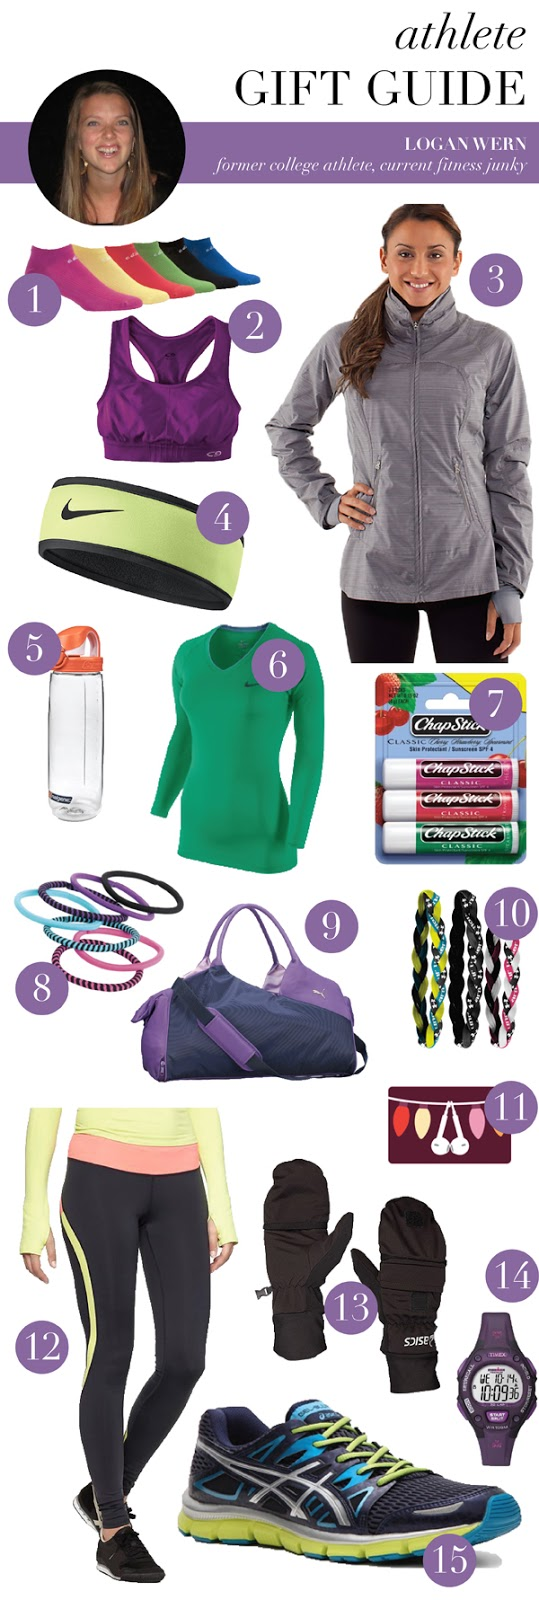 gift guide for the athlete (via Holly Would)